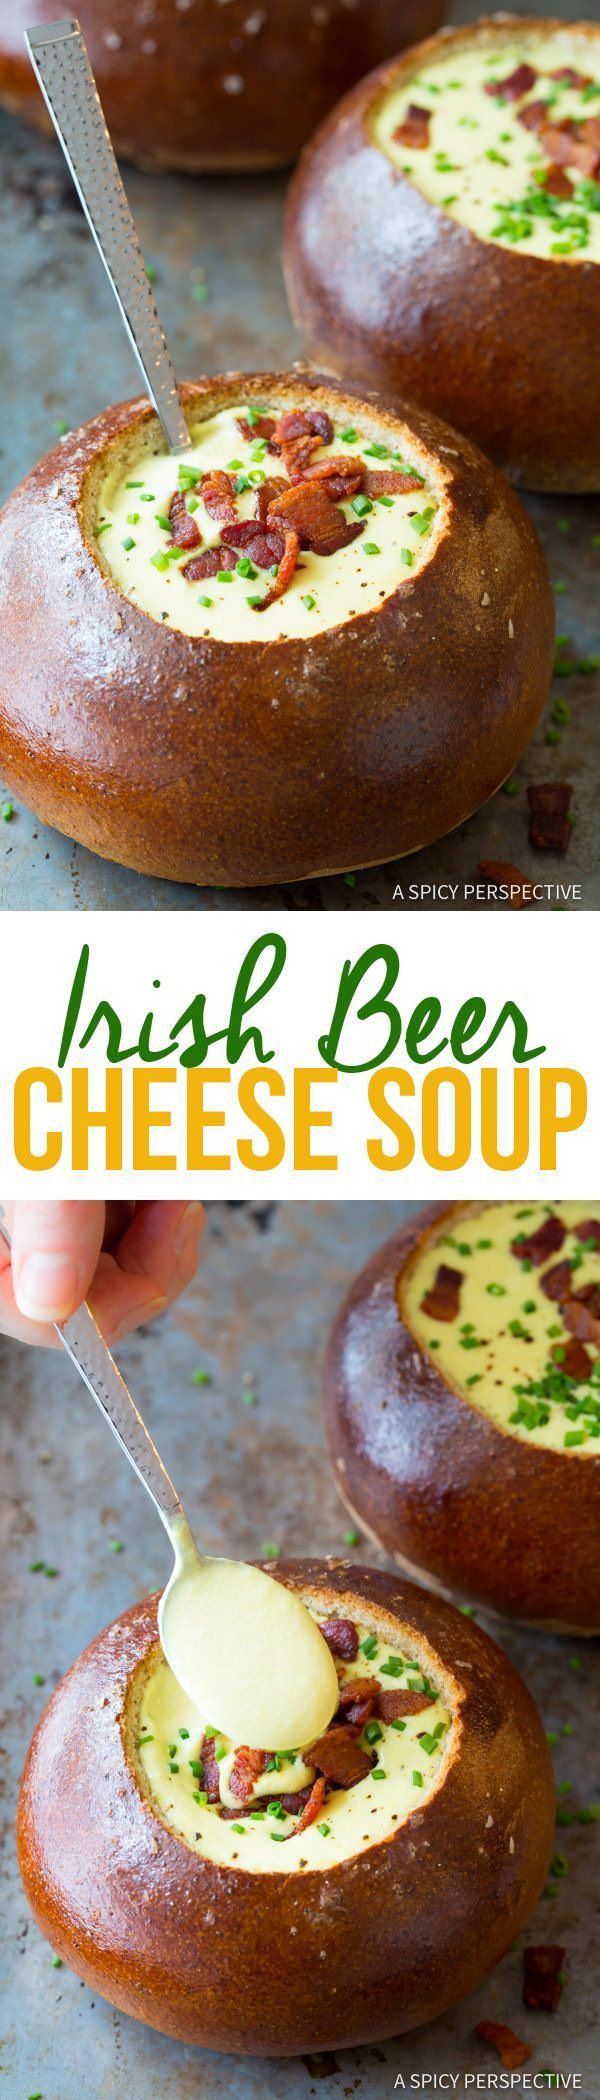 Irresistible Irish Beer Cheese Soup Recipe                                                                                                                                                                                 More